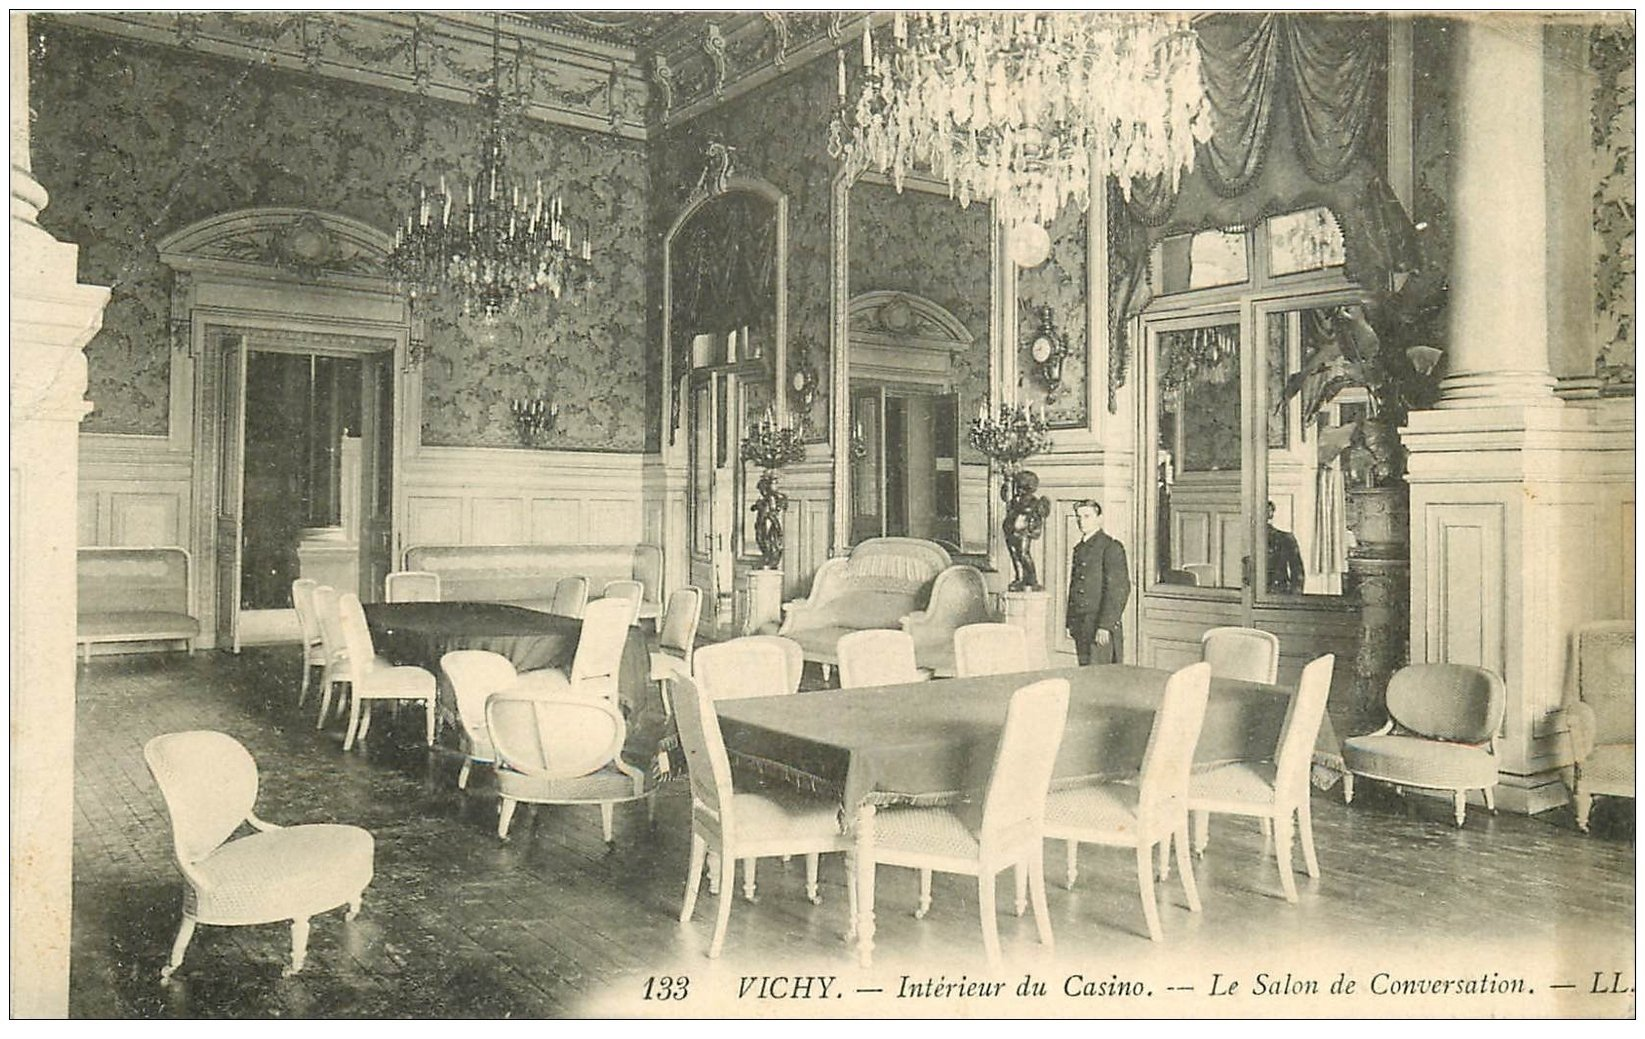 03 vichy casino salon des conversations 1913 for Salon carte postale